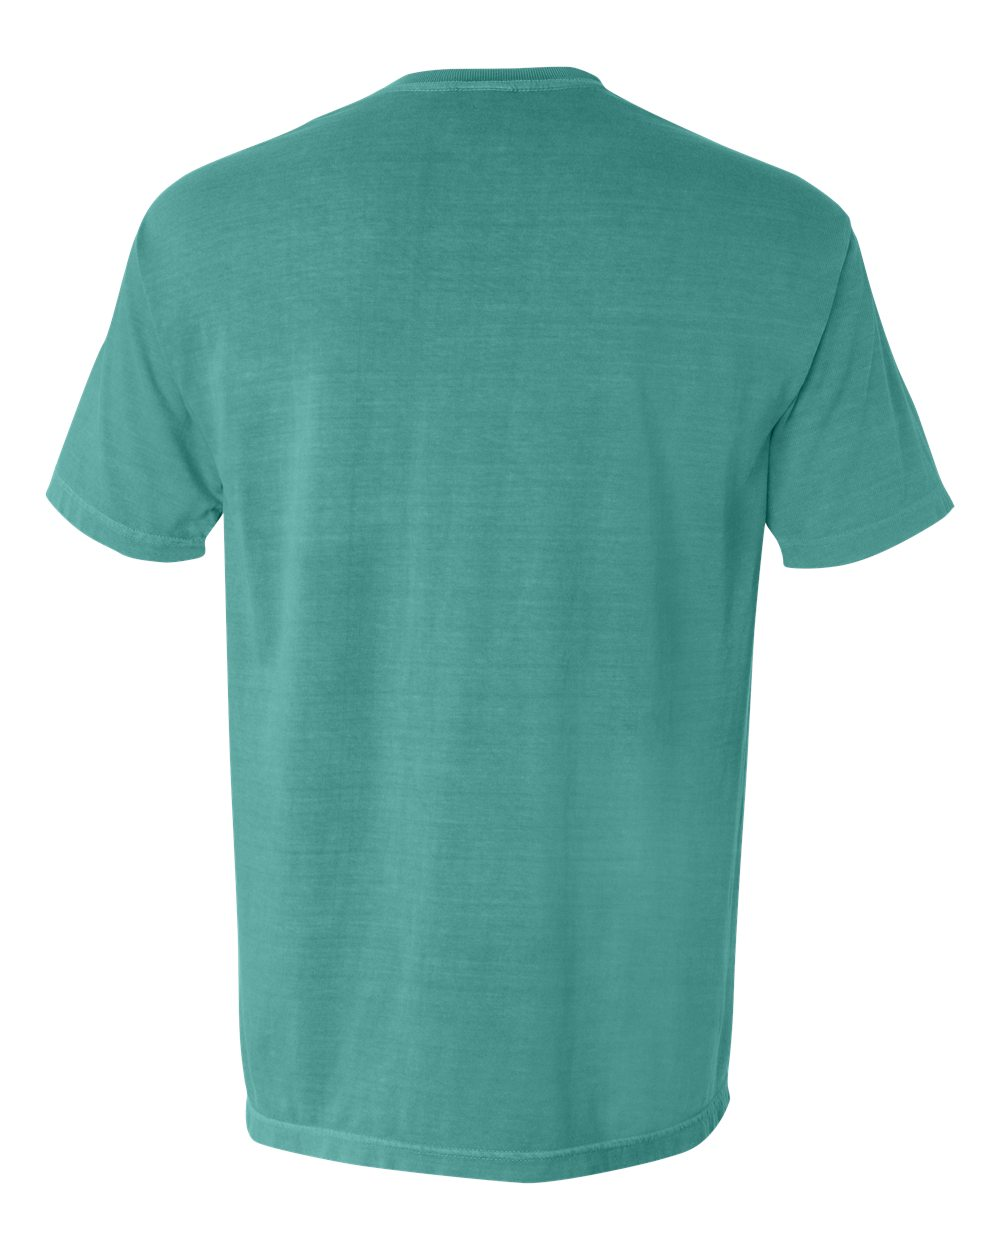 Comfort-Colors-Men-039-s-6-1-oz-Garment-Dyed-Pocket-T-Shirt-6030CC-S-3XL thumbnail 73